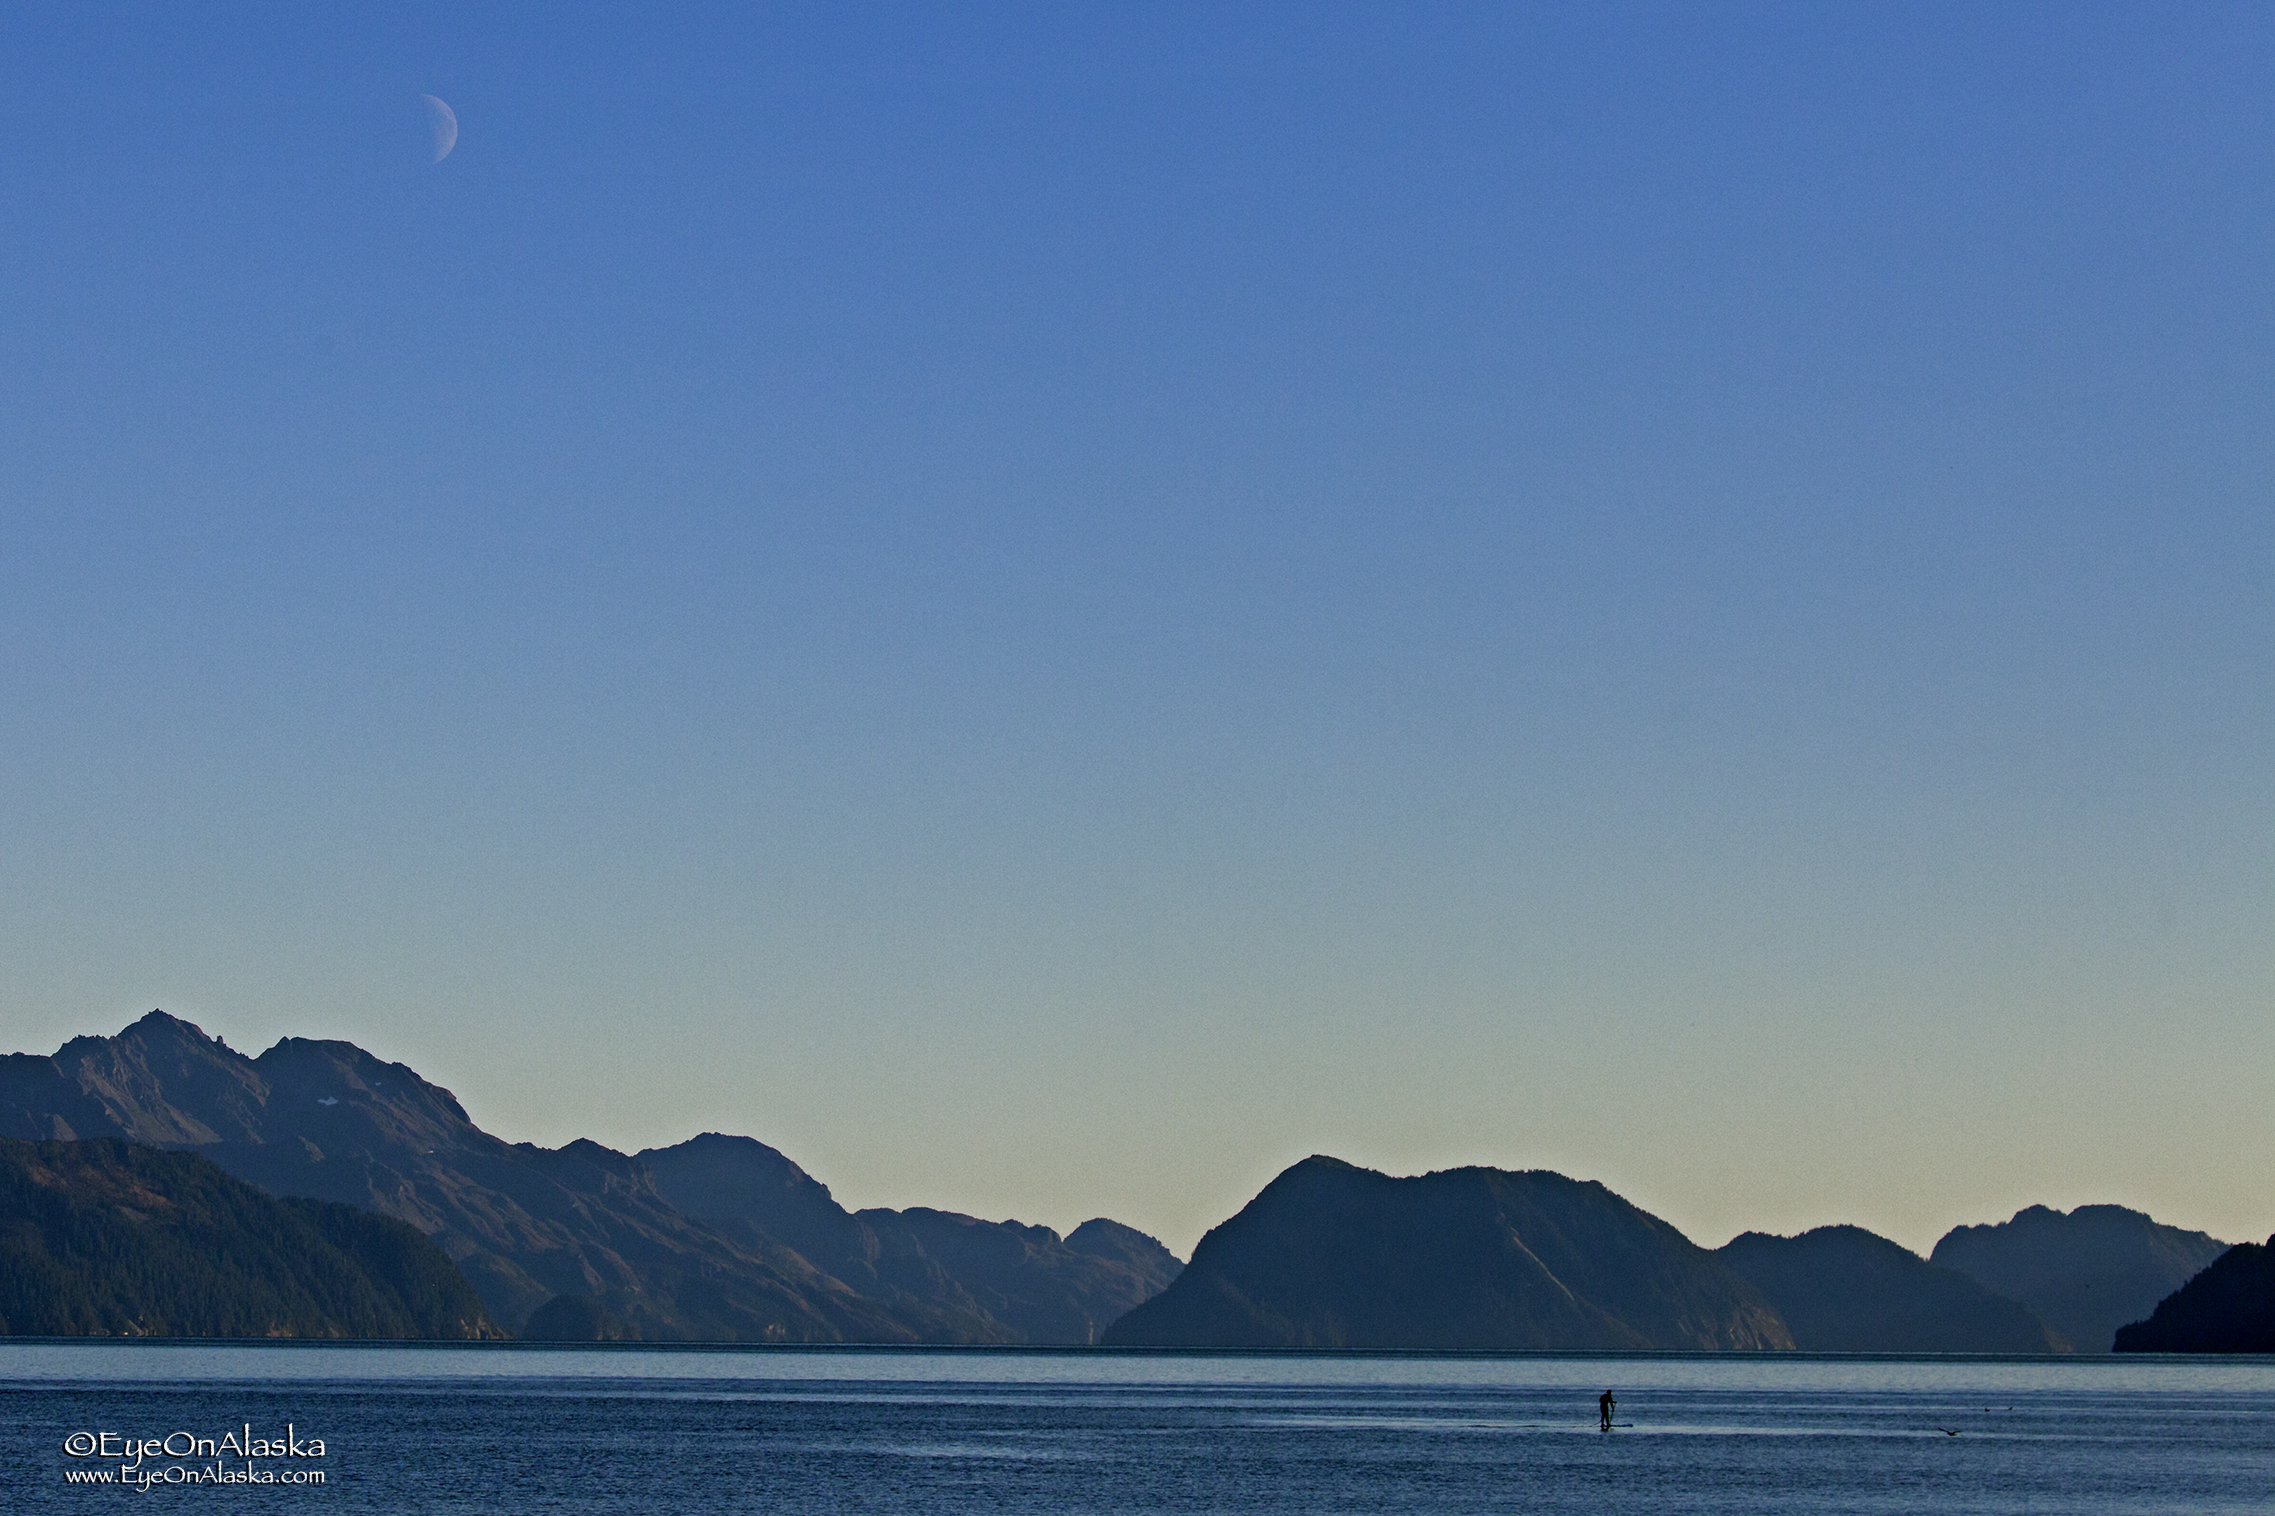 Paddle-boarding under a rising moon on an absolutely still evening.